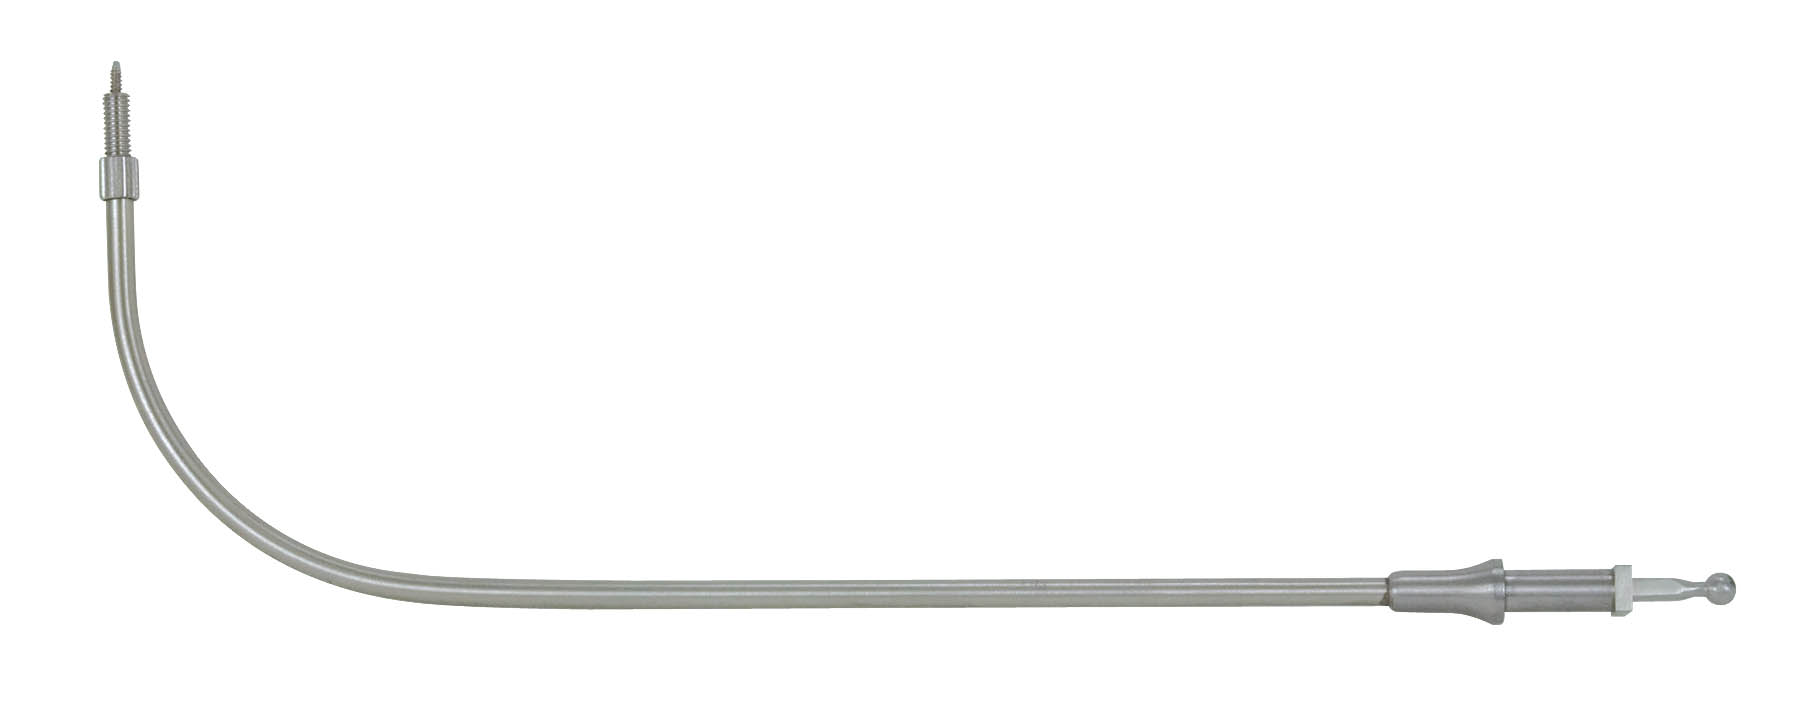 extension-cannula-for-universal-handle-straight-20-cm-23-410-miltex.jpg